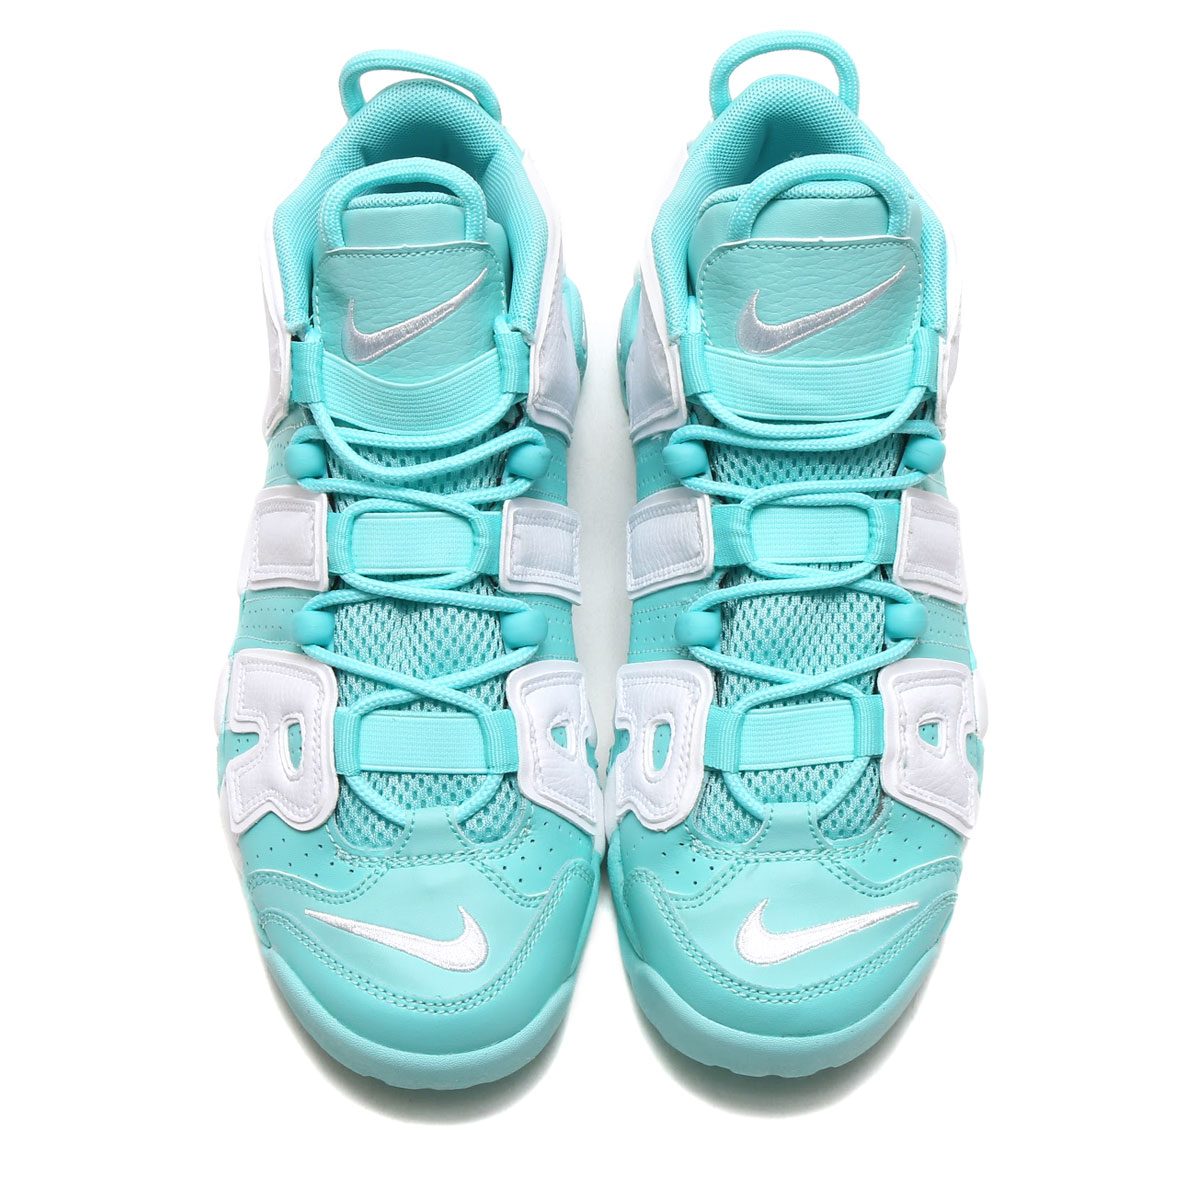 NIKE AIR MORE UPTEMPO GS (Nike air more up tempo GS) (ISLAND GREEN/WHITE)  17FA-S